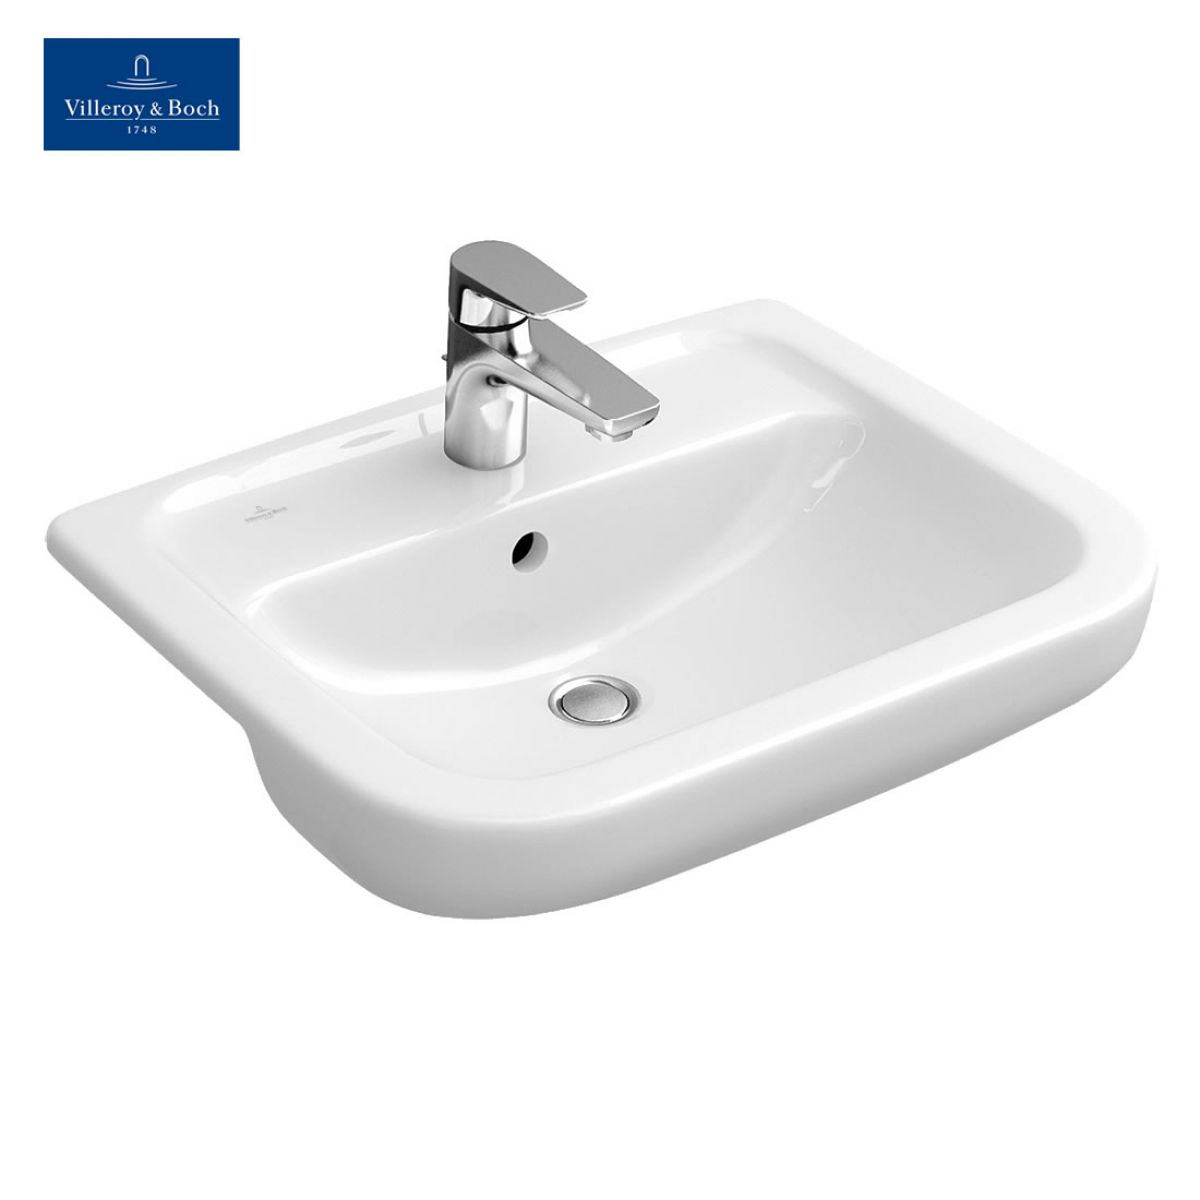 villeroy boch omnia architectura semi recessed washbasin uk bathrooms. Black Bedroom Furniture Sets. Home Design Ideas